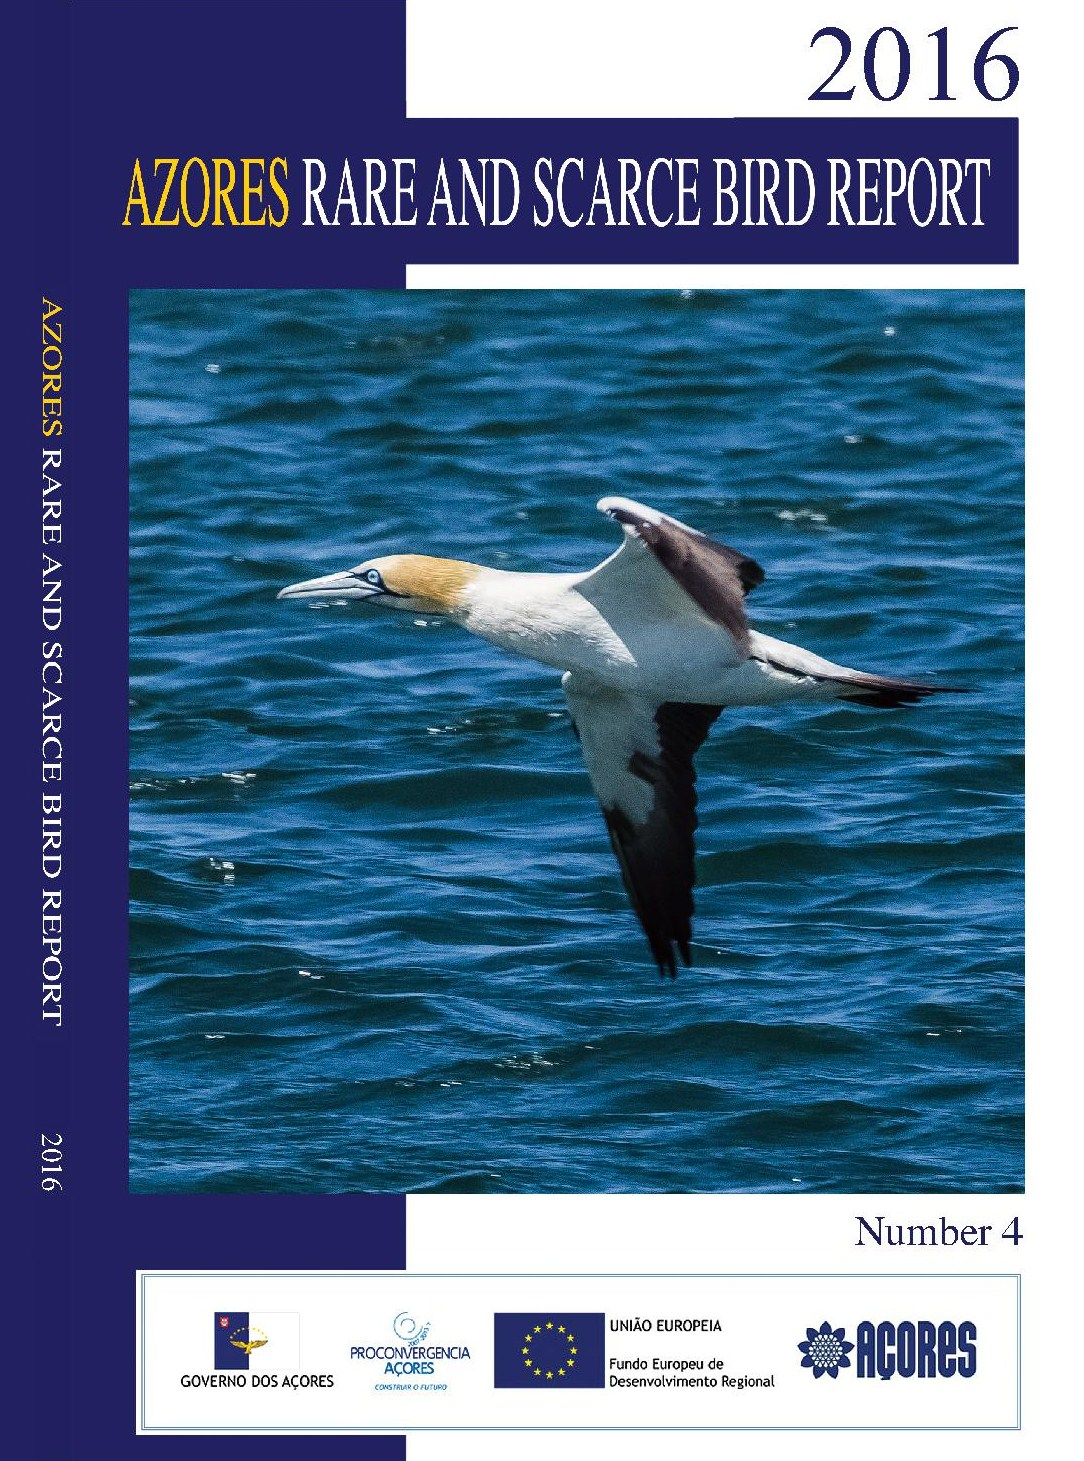 THE AZORES RARE AND SCARCE BIRD REPORT 2016